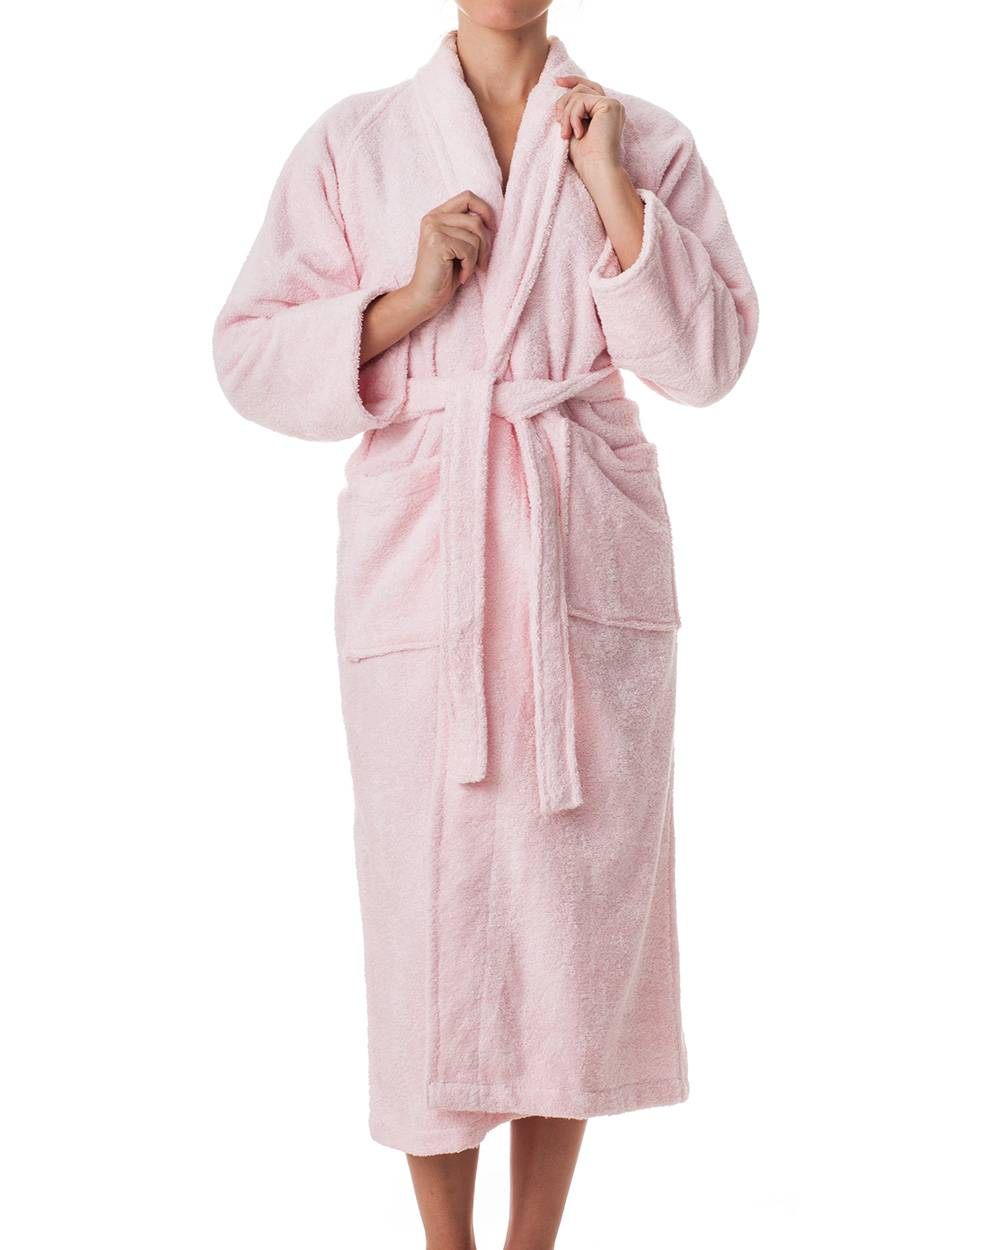 unisex terry cloth robe 100 egyptian cotton hotel spa robe by regency ebay. Black Bedroom Furniture Sets. Home Design Ideas